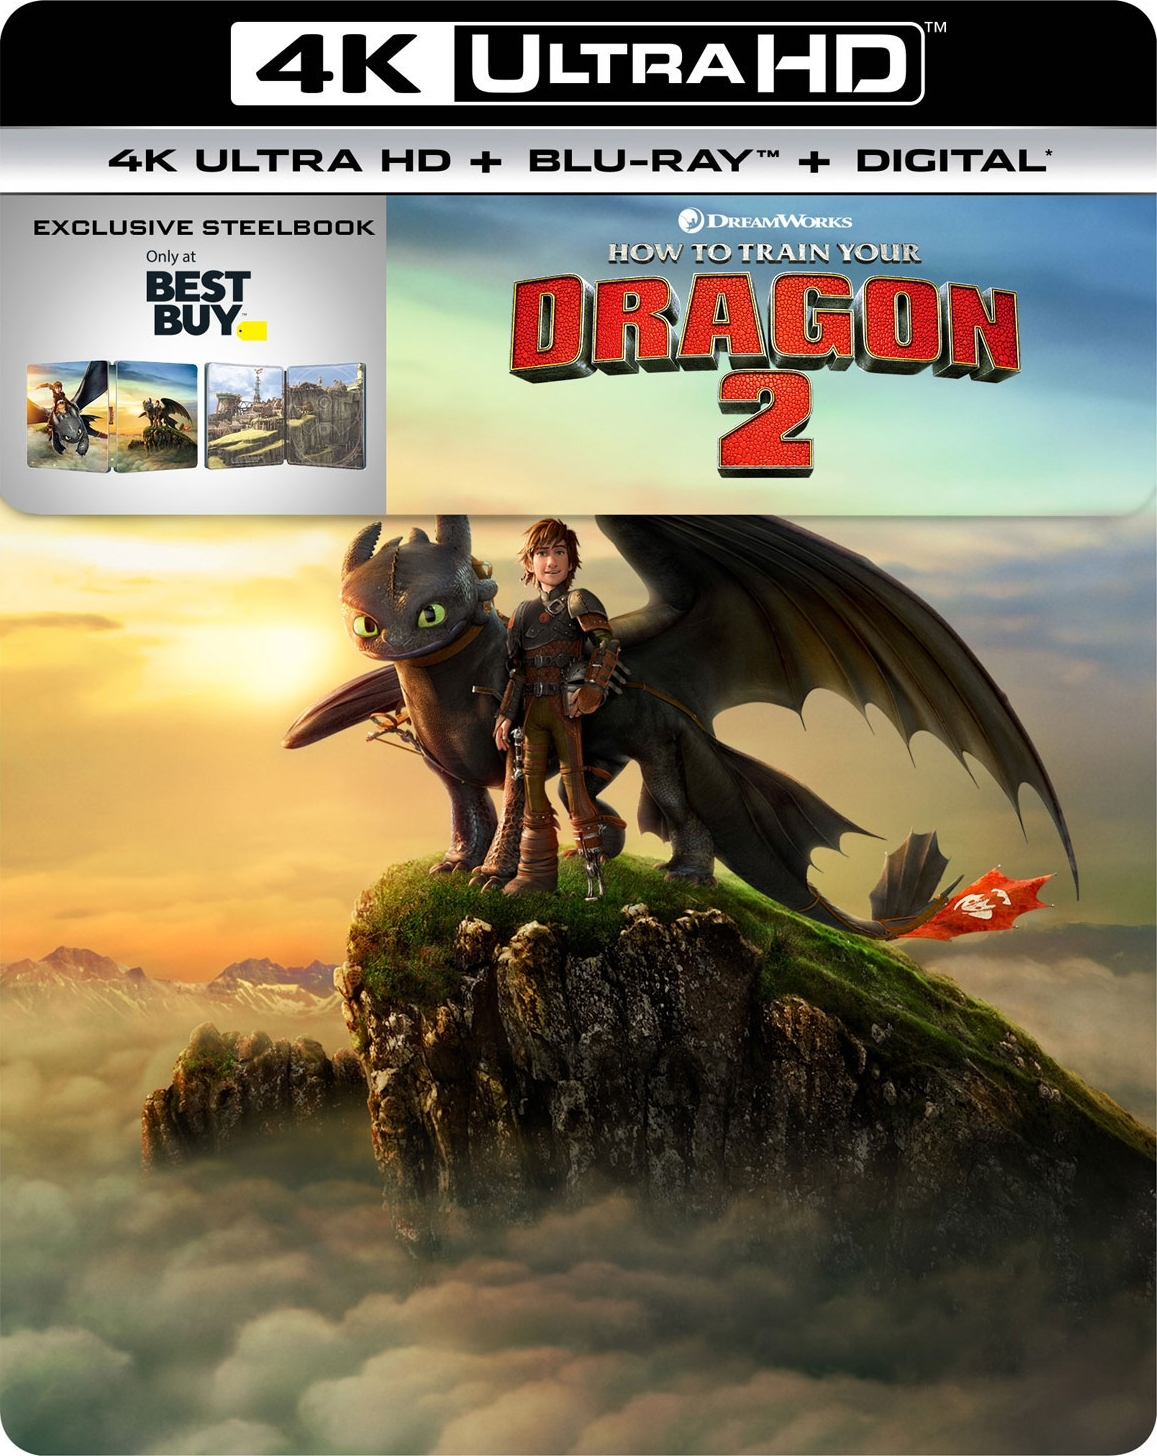 How to Train Your Dragon 2 (SteelBook)(4K Ultra HD Blu-ray)(Pre-order / Feb 5)